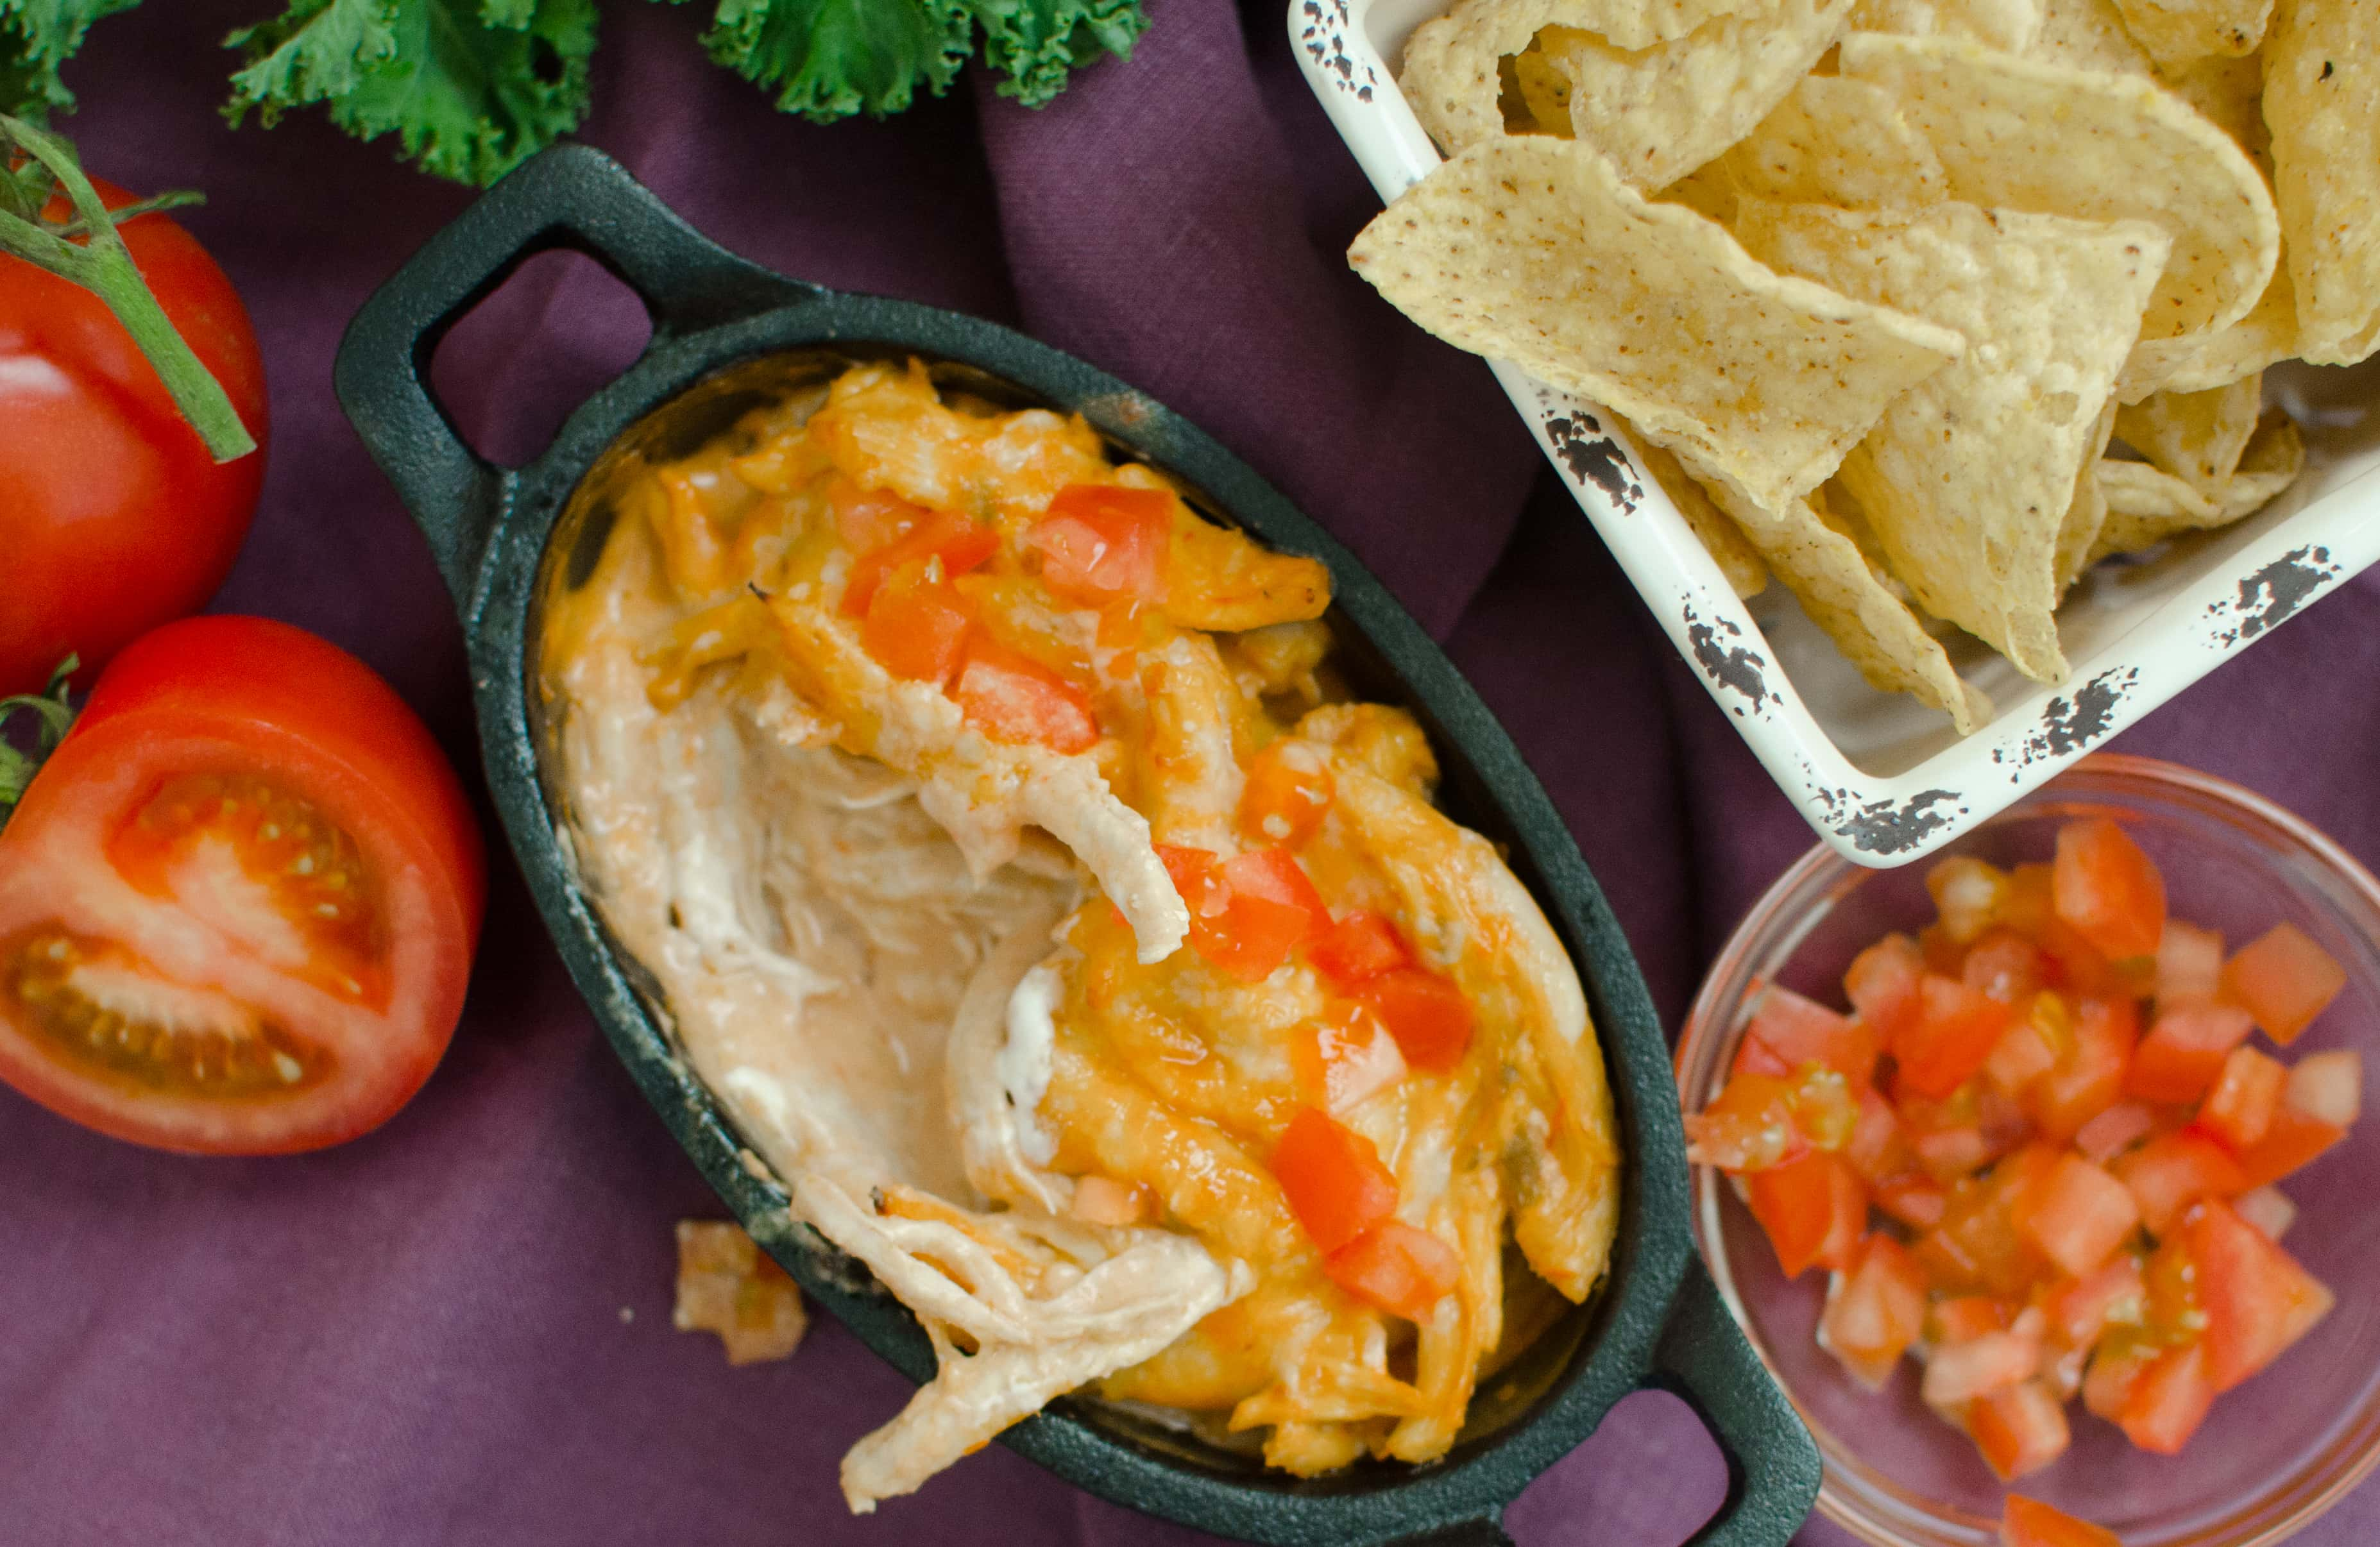 Creamy Salsa Chicken Dip is a perfect addition to any party or serve over rice for a delicious, quick weeknight dinner.